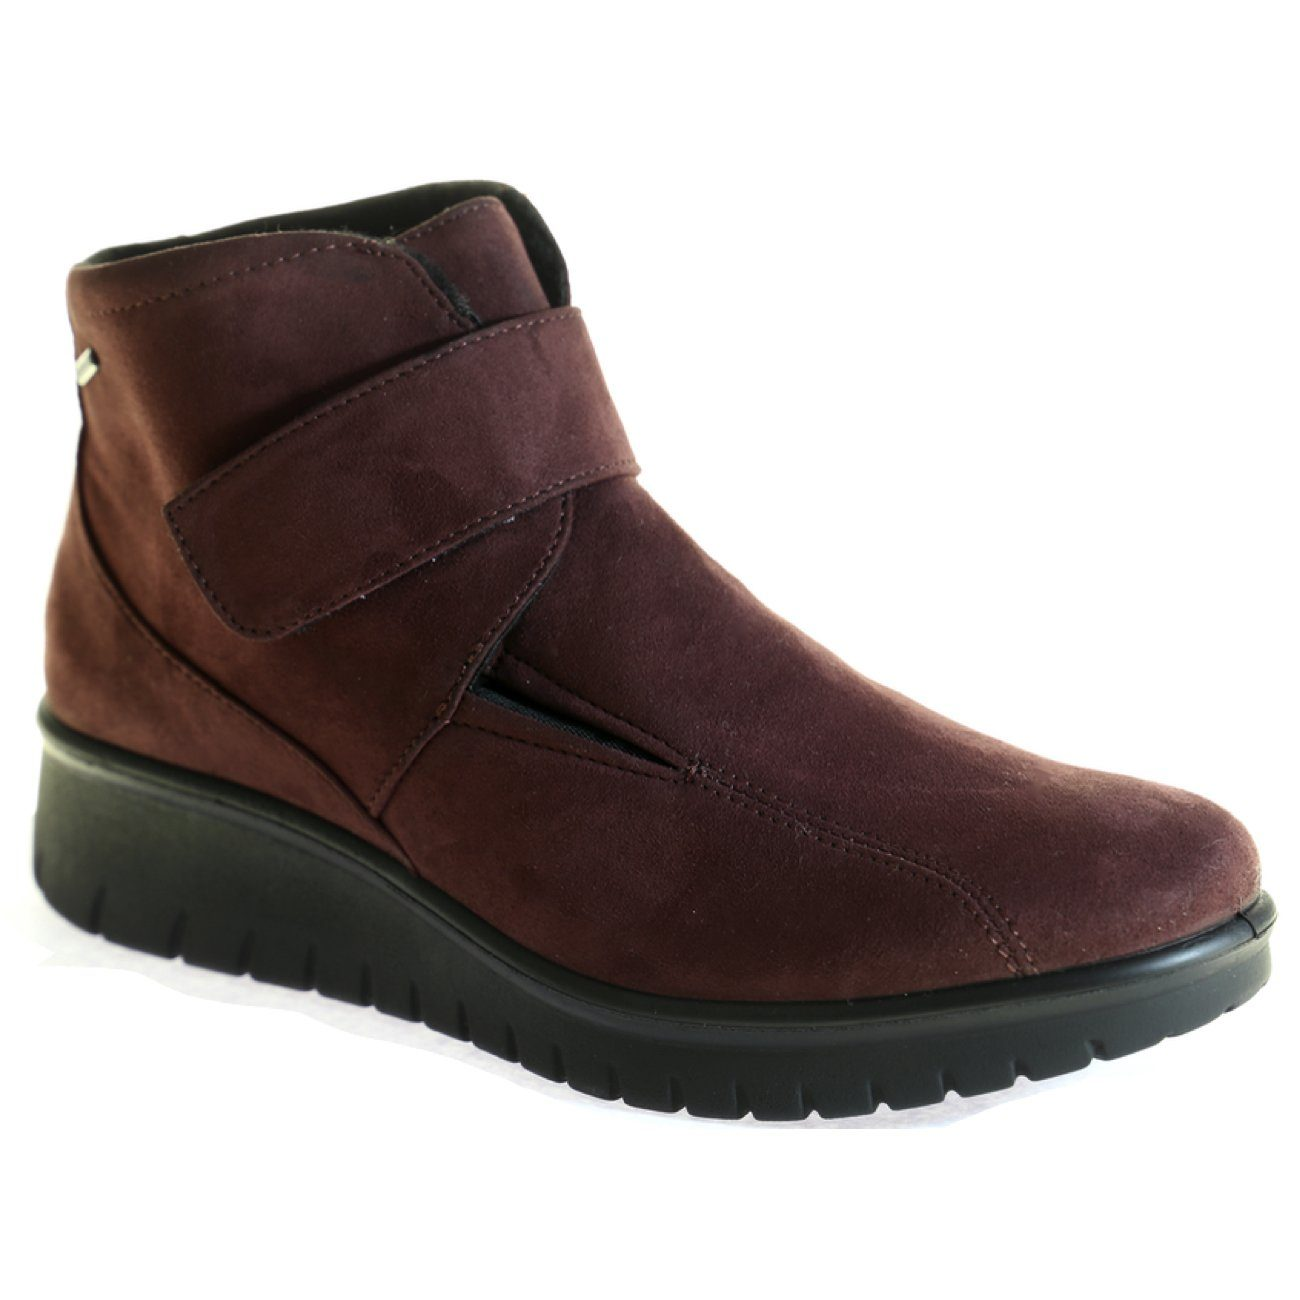 Romika, Varese N 80, Boot, Waterproof, Red Boots Romika Red 36